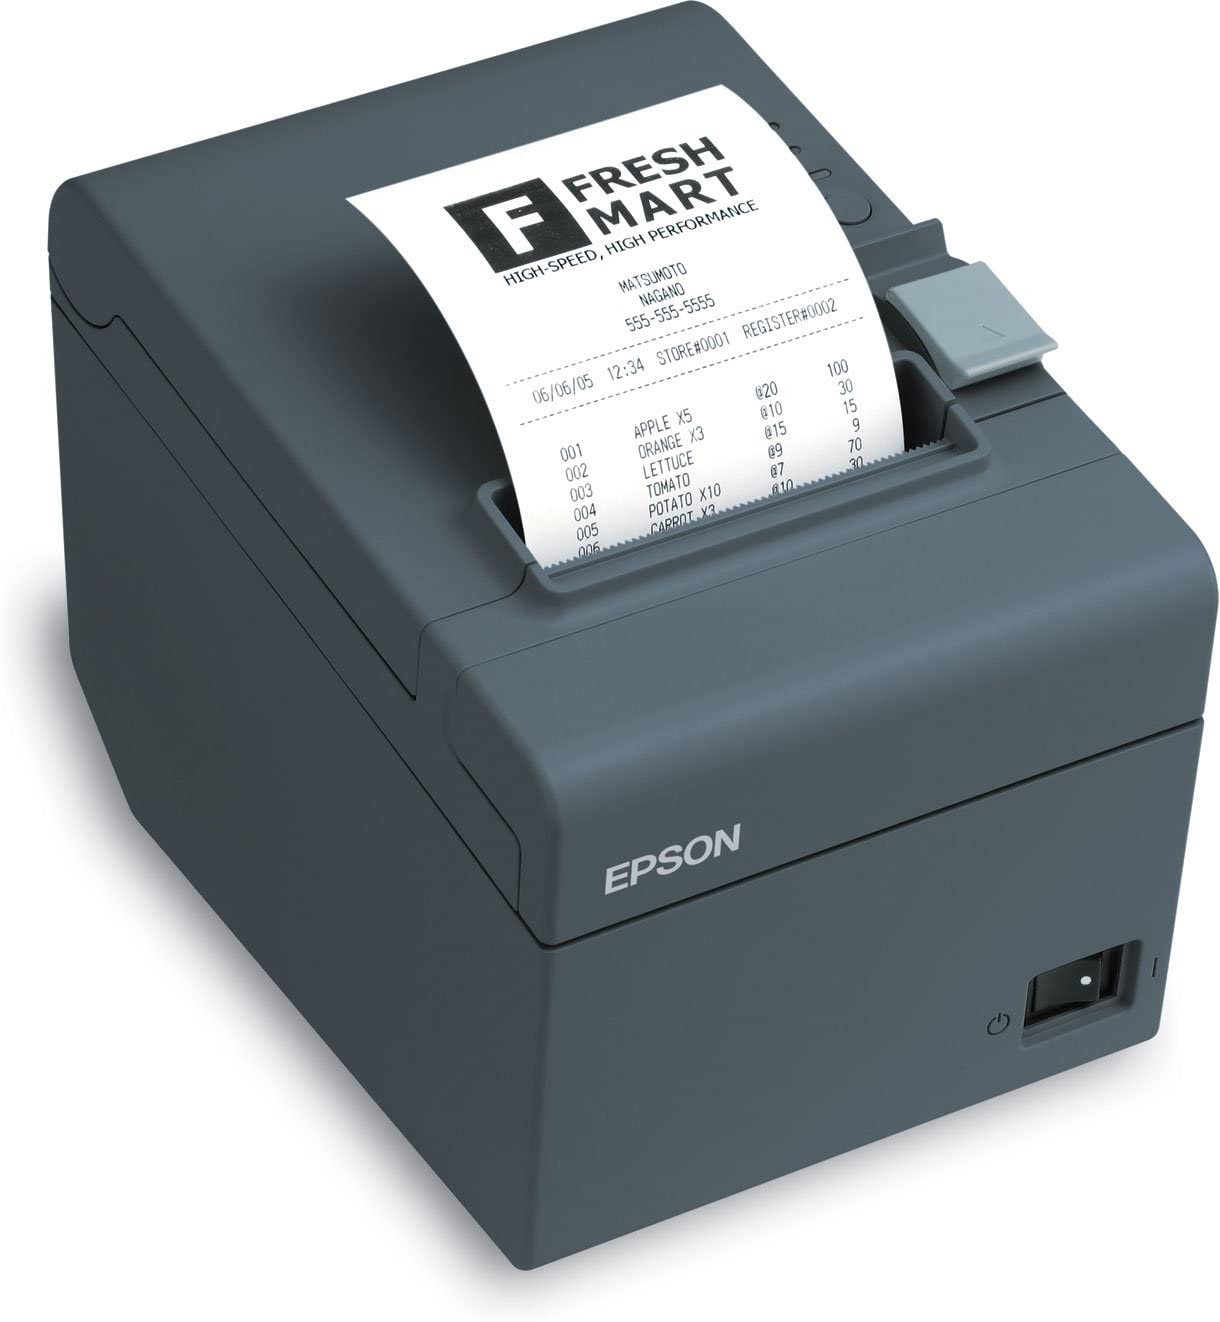 Amazon.com: Epson ReadyPrint T20 Direct Thermal Printer - Monochrome -  Desktop - Receipt Print (C31CB10021): Office Products